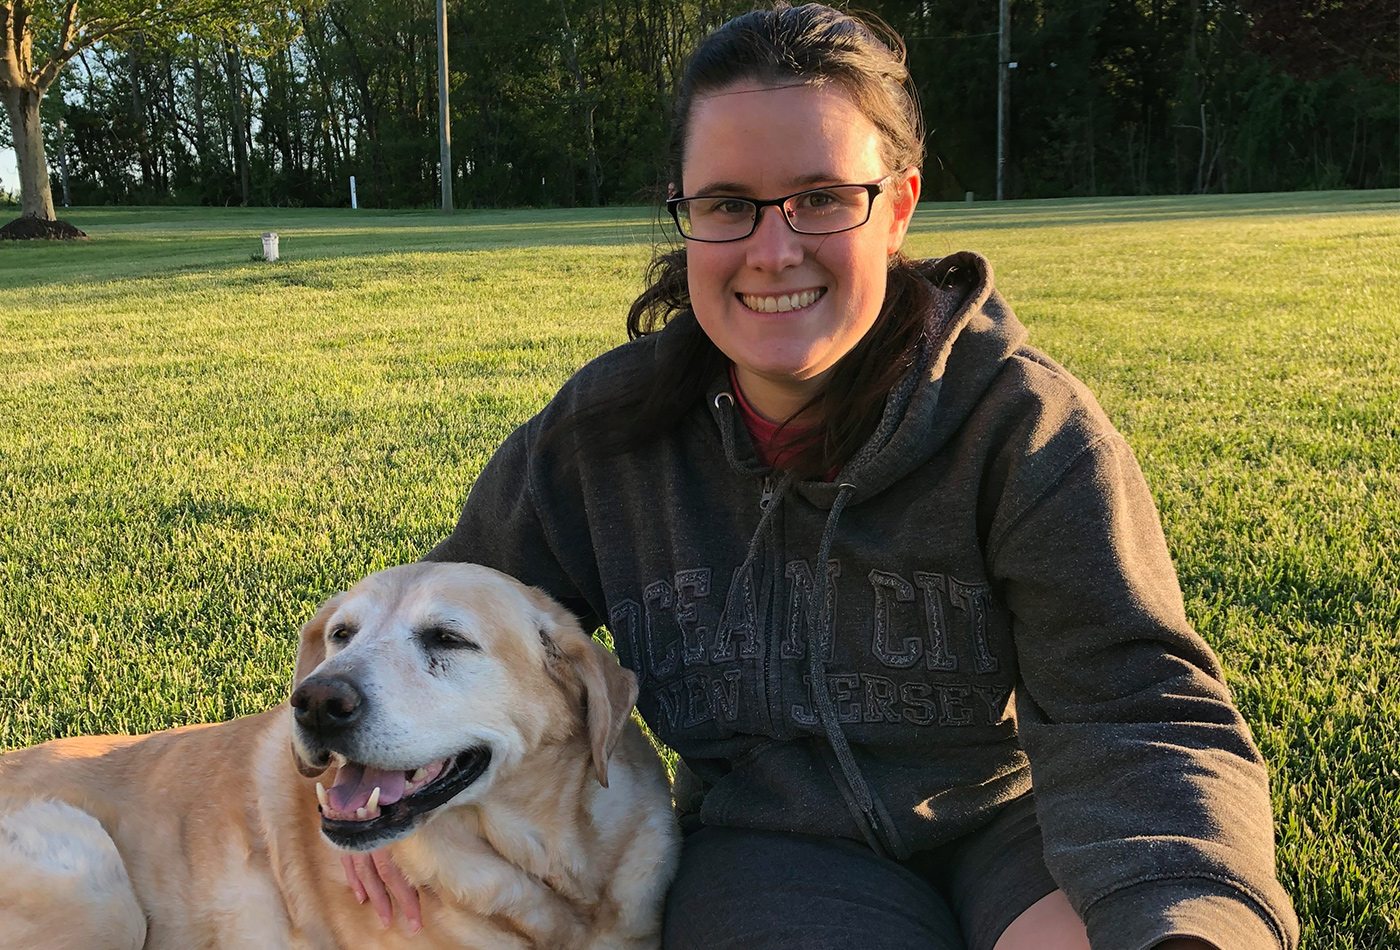 A woman smiles beside a yellow lab.